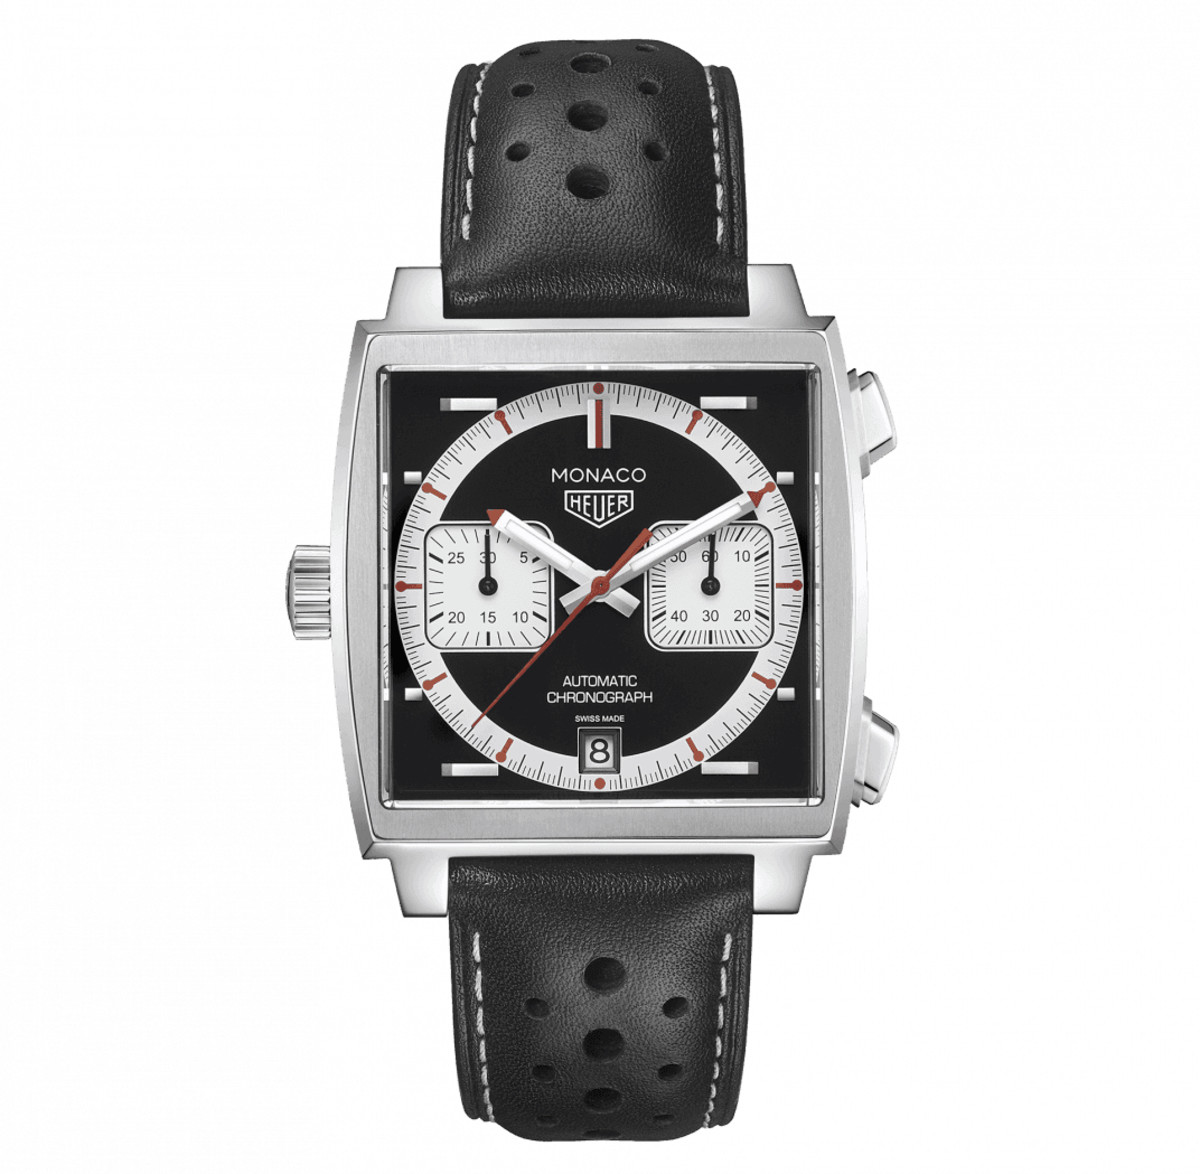 Tag Heuer 1999-2009 50th Anniversary